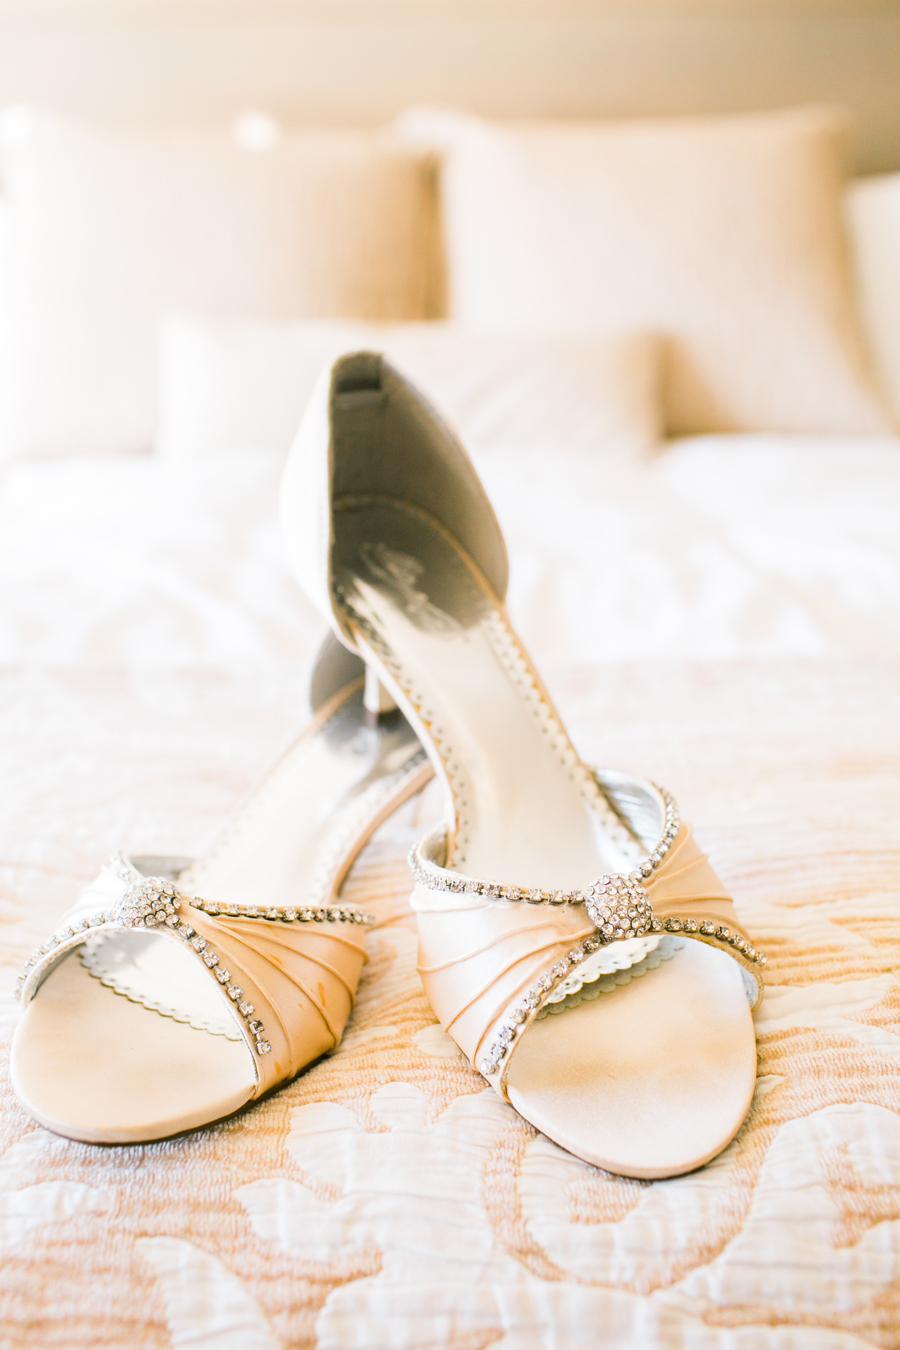 006-bellingham-wedding-photographer-chrysalis-inn-and-spa-elopement-katheryn-moran-photography.jpg